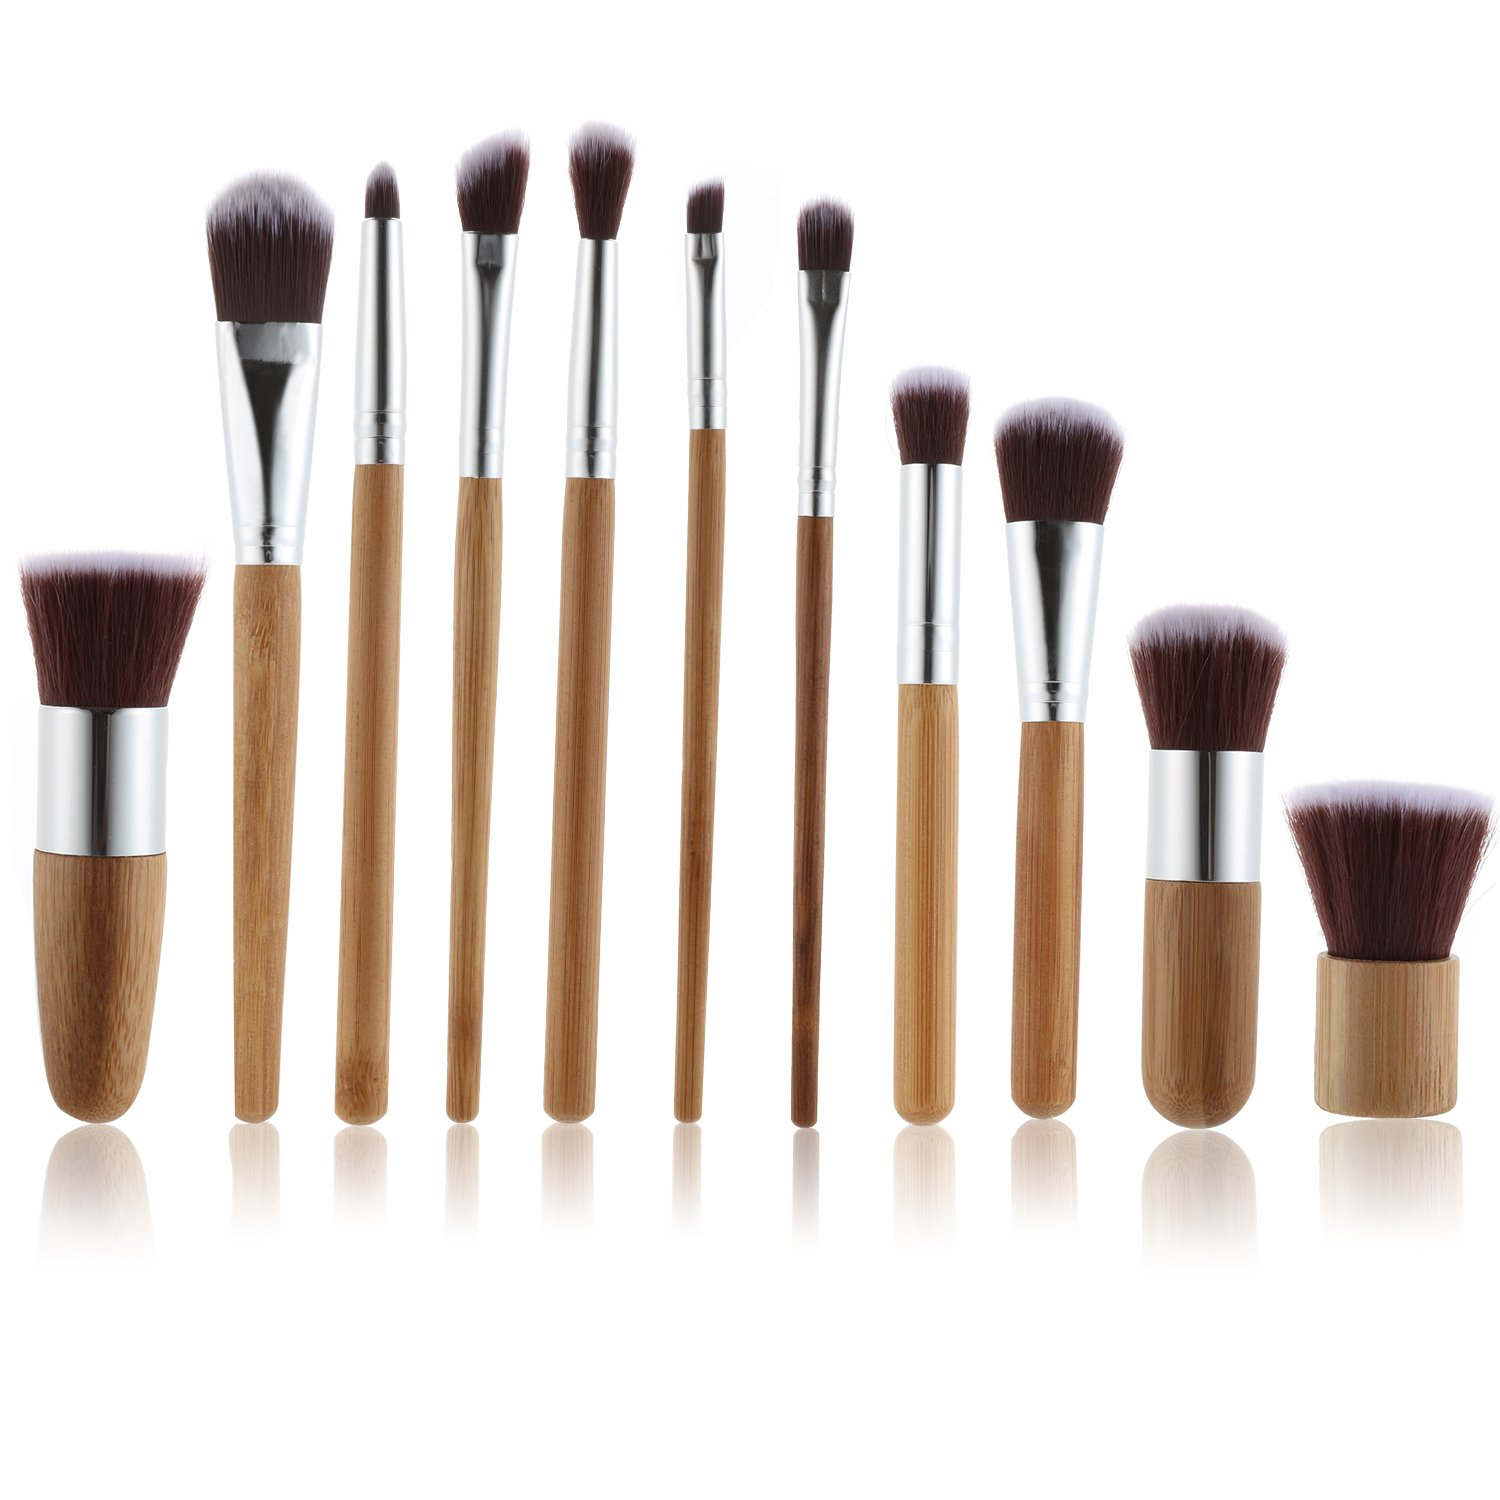 Bohol 11pcs Bamboo Handles Premium Soft Synthetic Makeup Brush Set Face Eye Shadow Eyeliner Foundation Blush Lip Powder Liquid Cream Brush Cosmetics Brushes Kit with Travel Bag